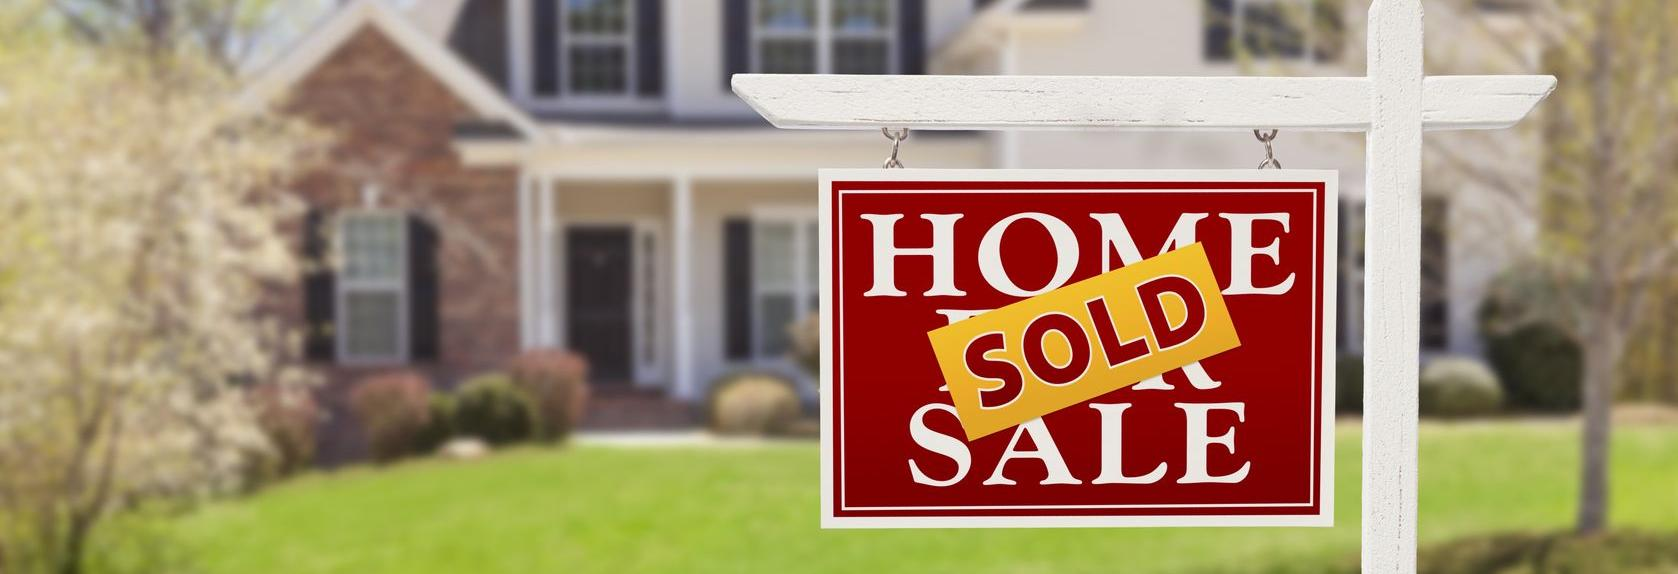 sell my house sell my home homes for sale